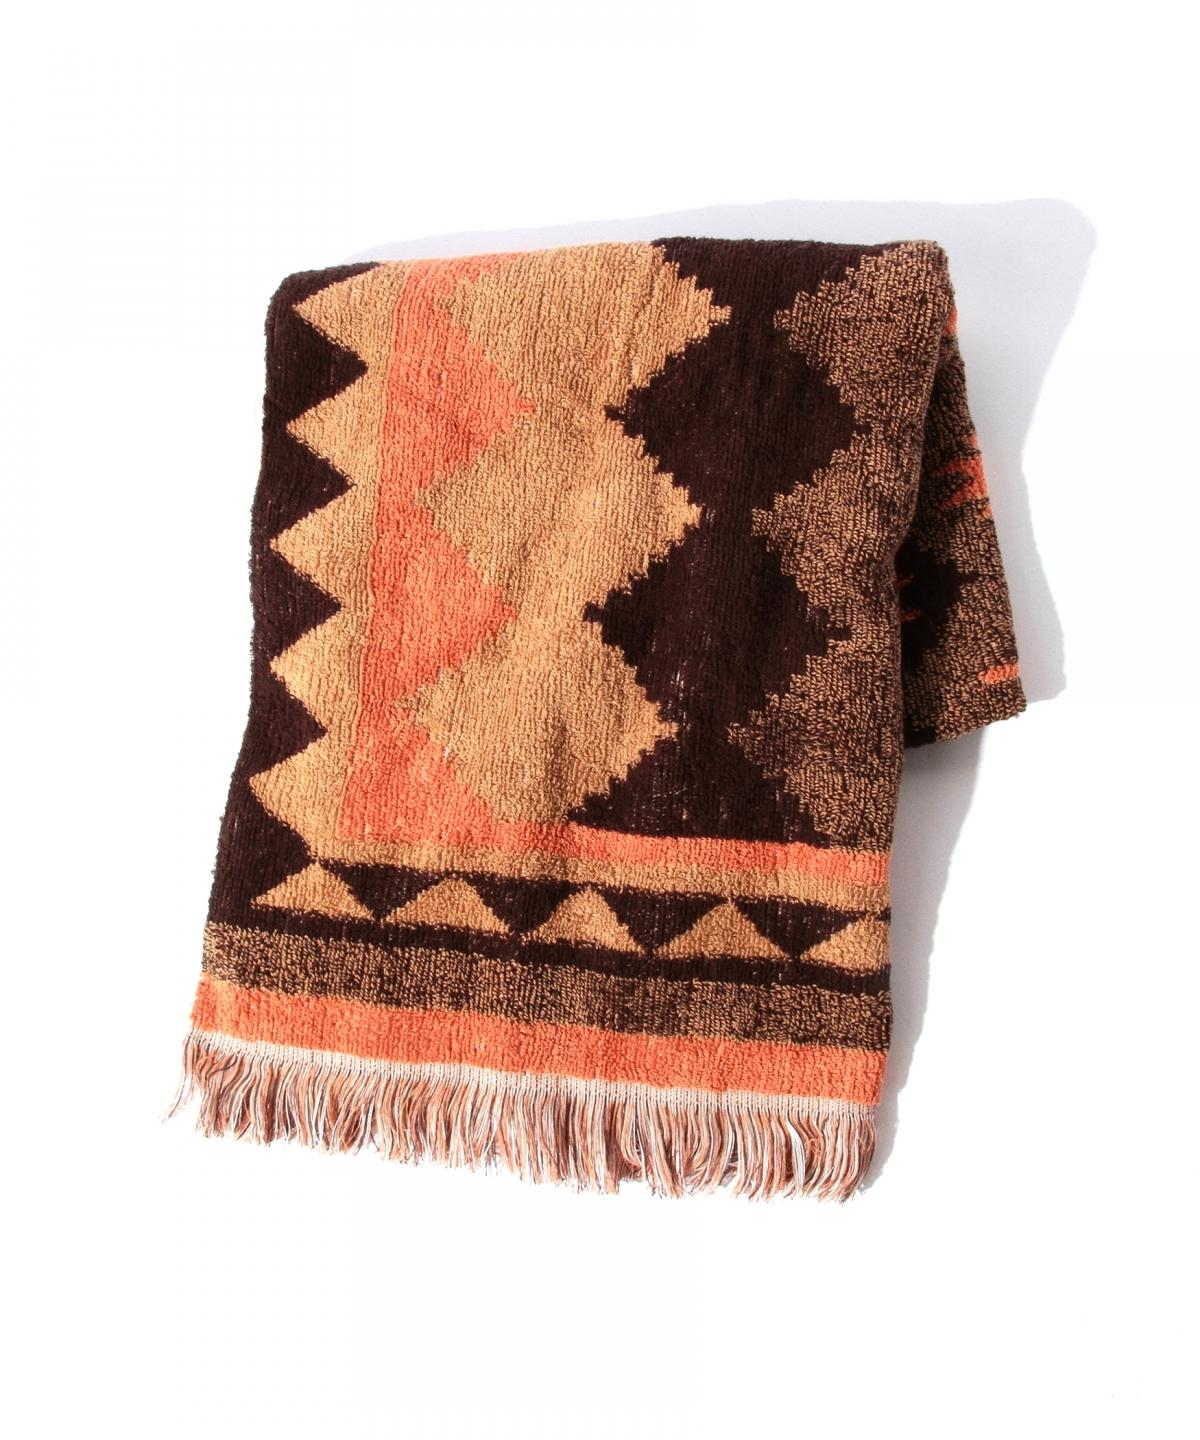 Navajo Cotton Blanket